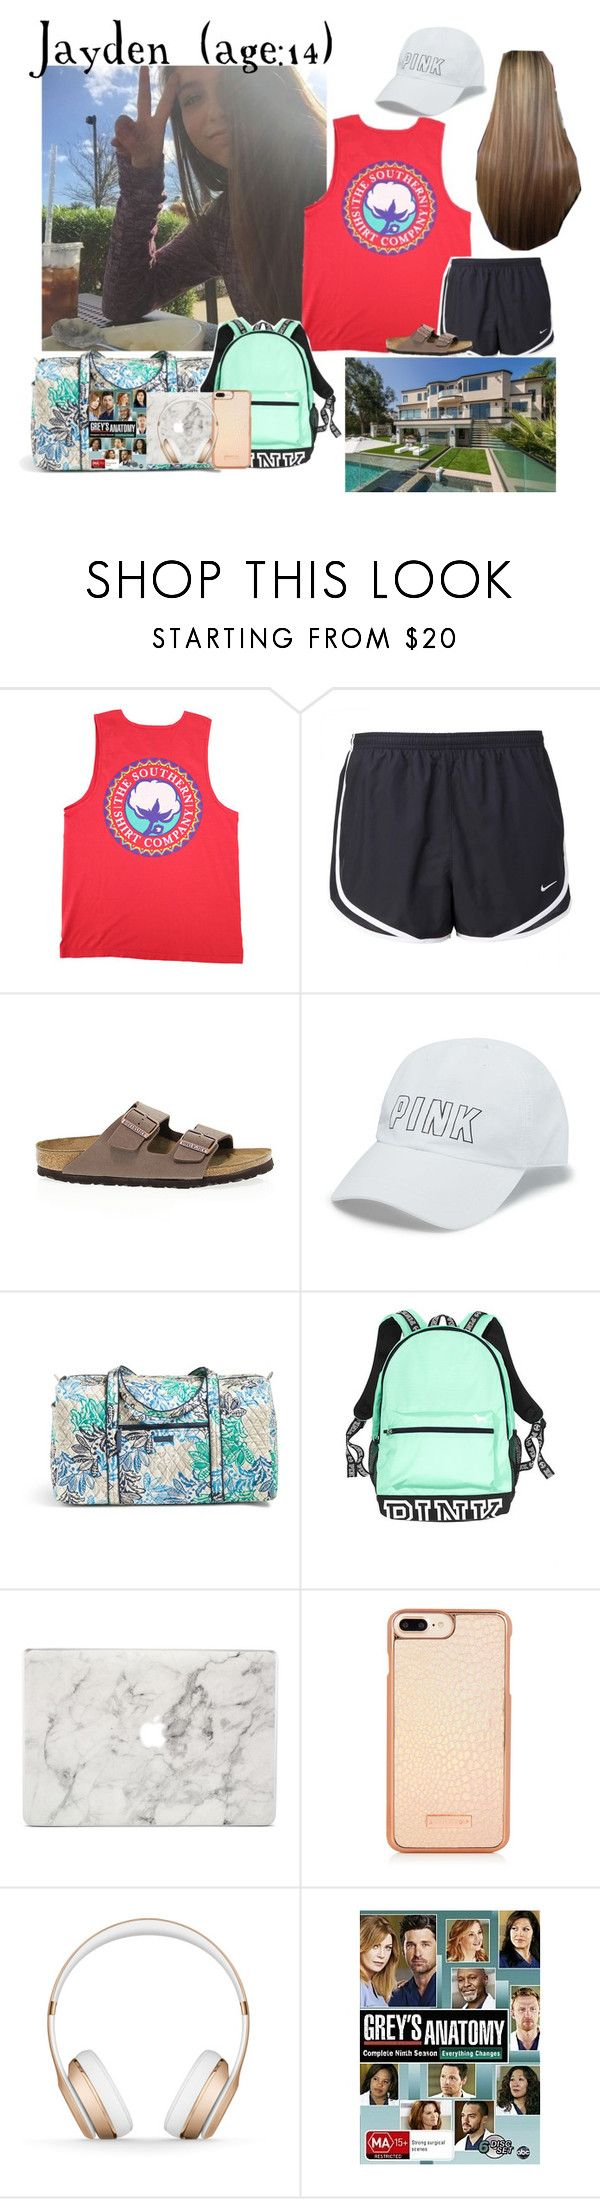 """Jayden // 4-21-17 // Driving Home From Lake Tahoe"" by dream-families ❤ liked on Polyvore featuring NIKE, Birkenstock, Victoria's Secret, Vera Bradley, Agent 18, Beats by Dr. Dre and TheOvermanFamily"